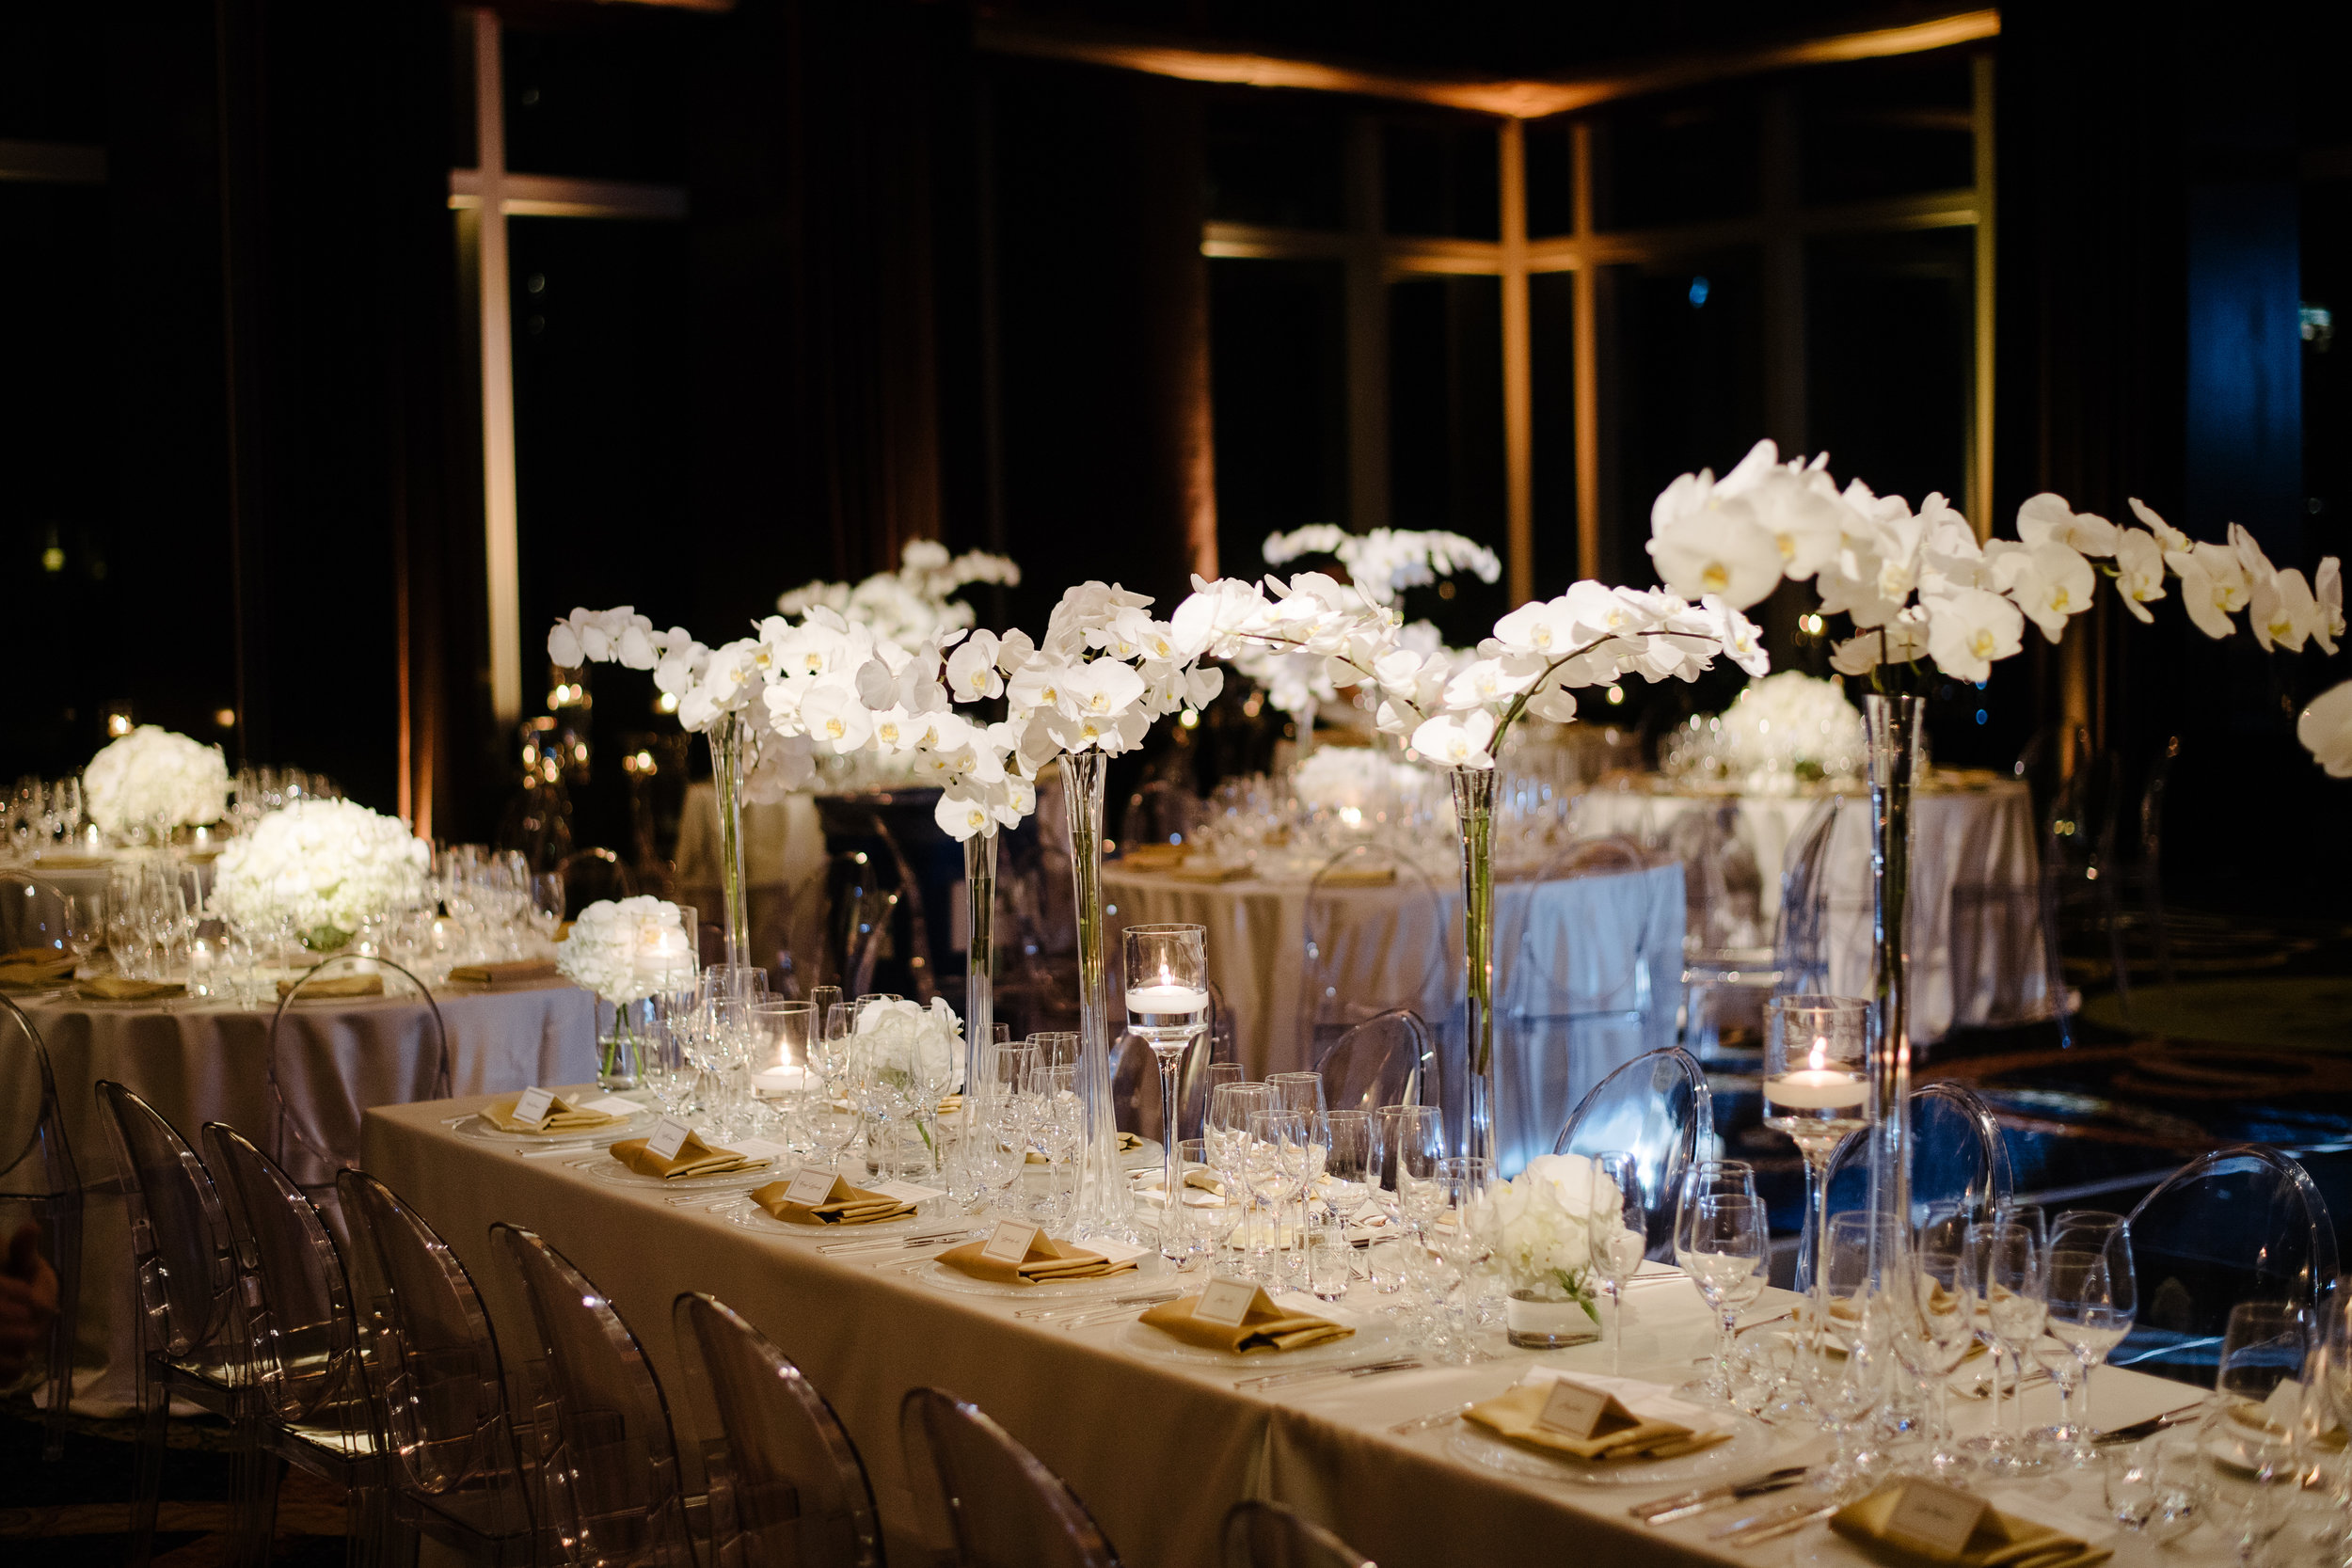 New-York-Wedding-Mandarin-Oriental-Andrea-Freeman-Events-12.jpg